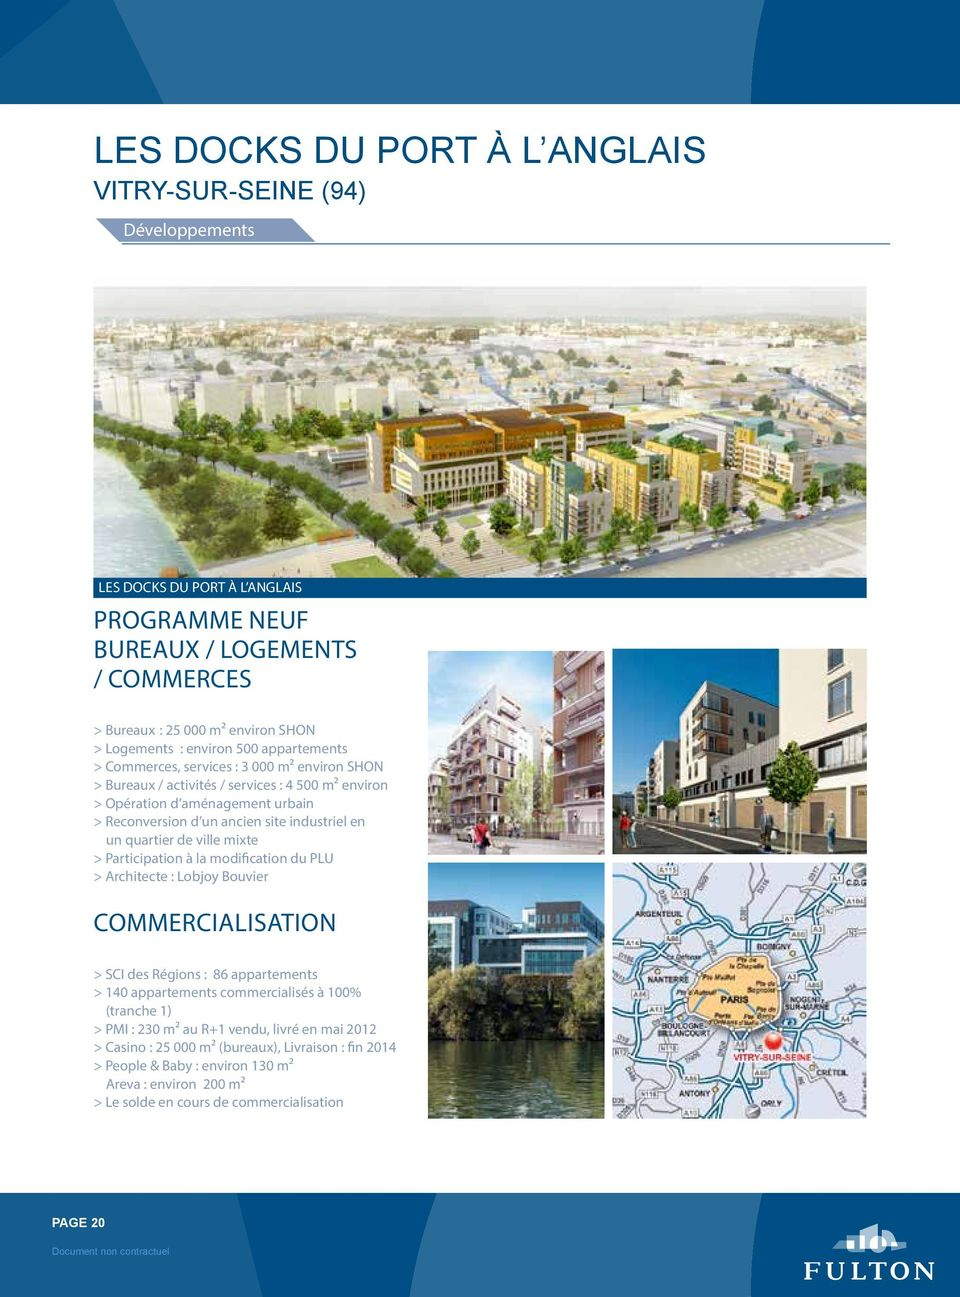 industriel en un quartier de ville mixte > Participation à la modification du PLU > Architecte : Lobjoy Bouvier > SCI des Régions : 86 appartements > 140 appartements commercialisés à 100%